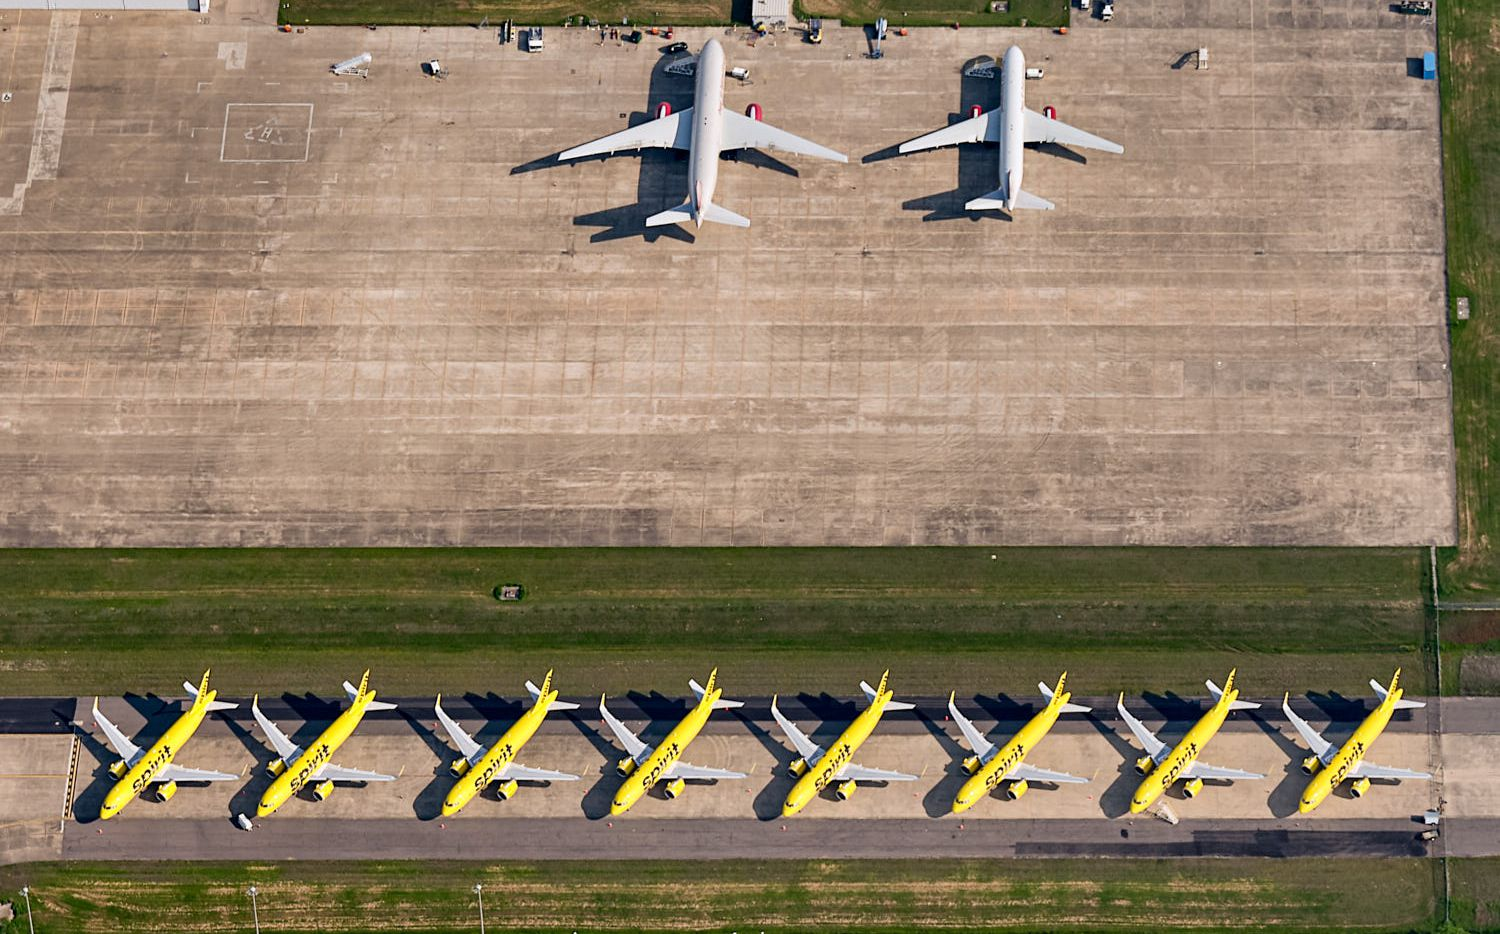 Grounded Spirit Airlines jets at Fort Worth Alliance Airport that Andy Luten photographed from a helicopter for a project about parked airline jets across the country.